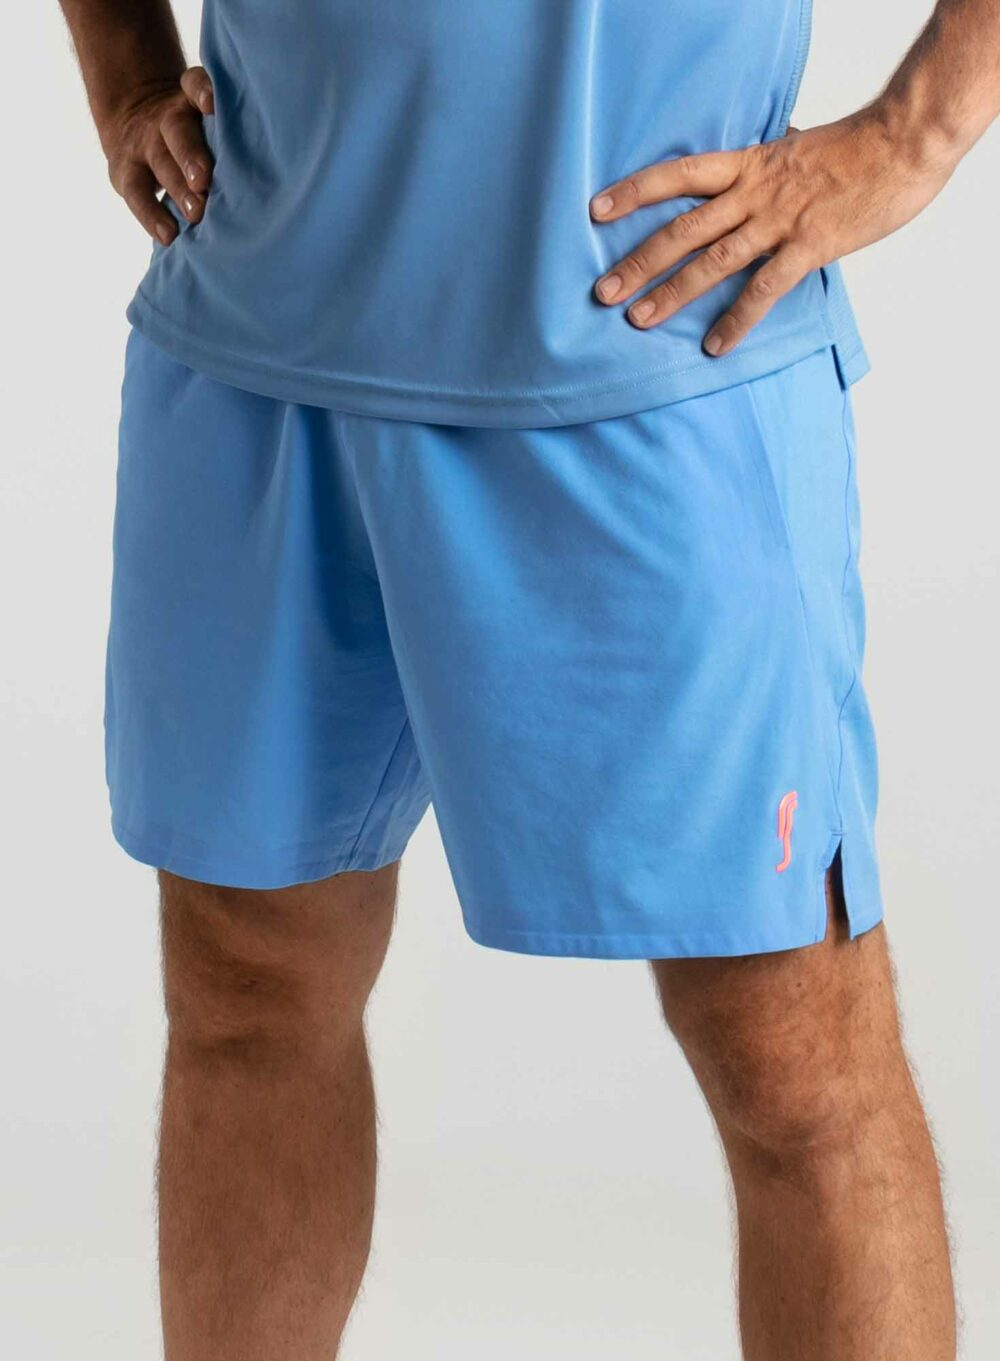 rs_performance_shorts_strongblue_1